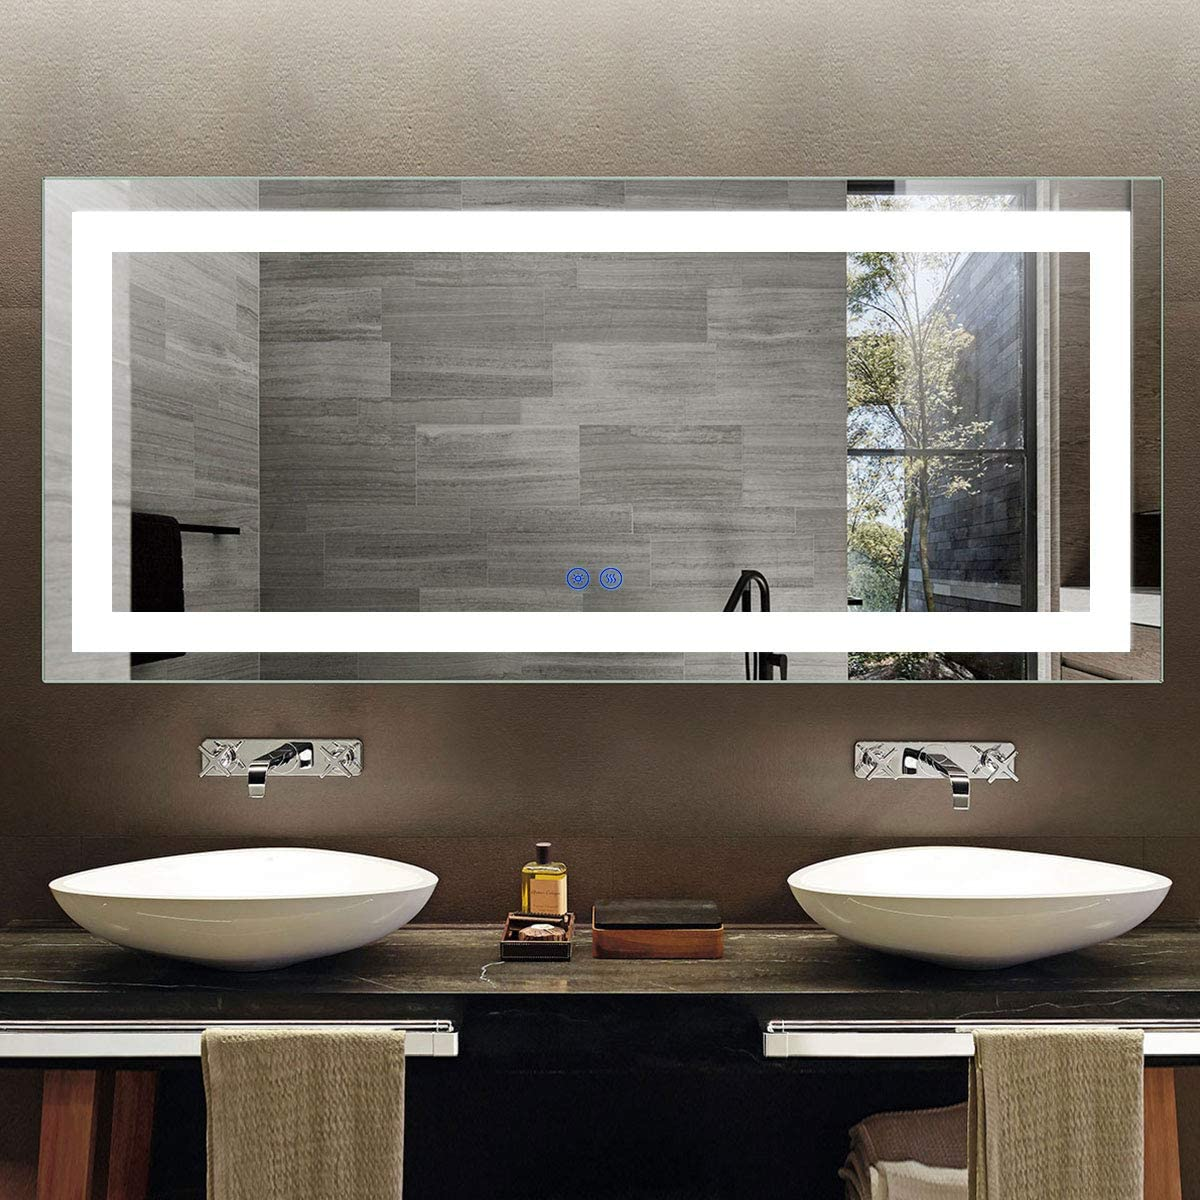 Dimmable Led Bathroom Vanity Mirror Wall Makeup Mirror With Light Large Horizontal Vertical Rectangle Mirror Hotel Office Bar Anti Fog Mirror Okiss 40x24inch Lighted Bathroom Mirror Home Kitchen Bath Fcteutonia05 De